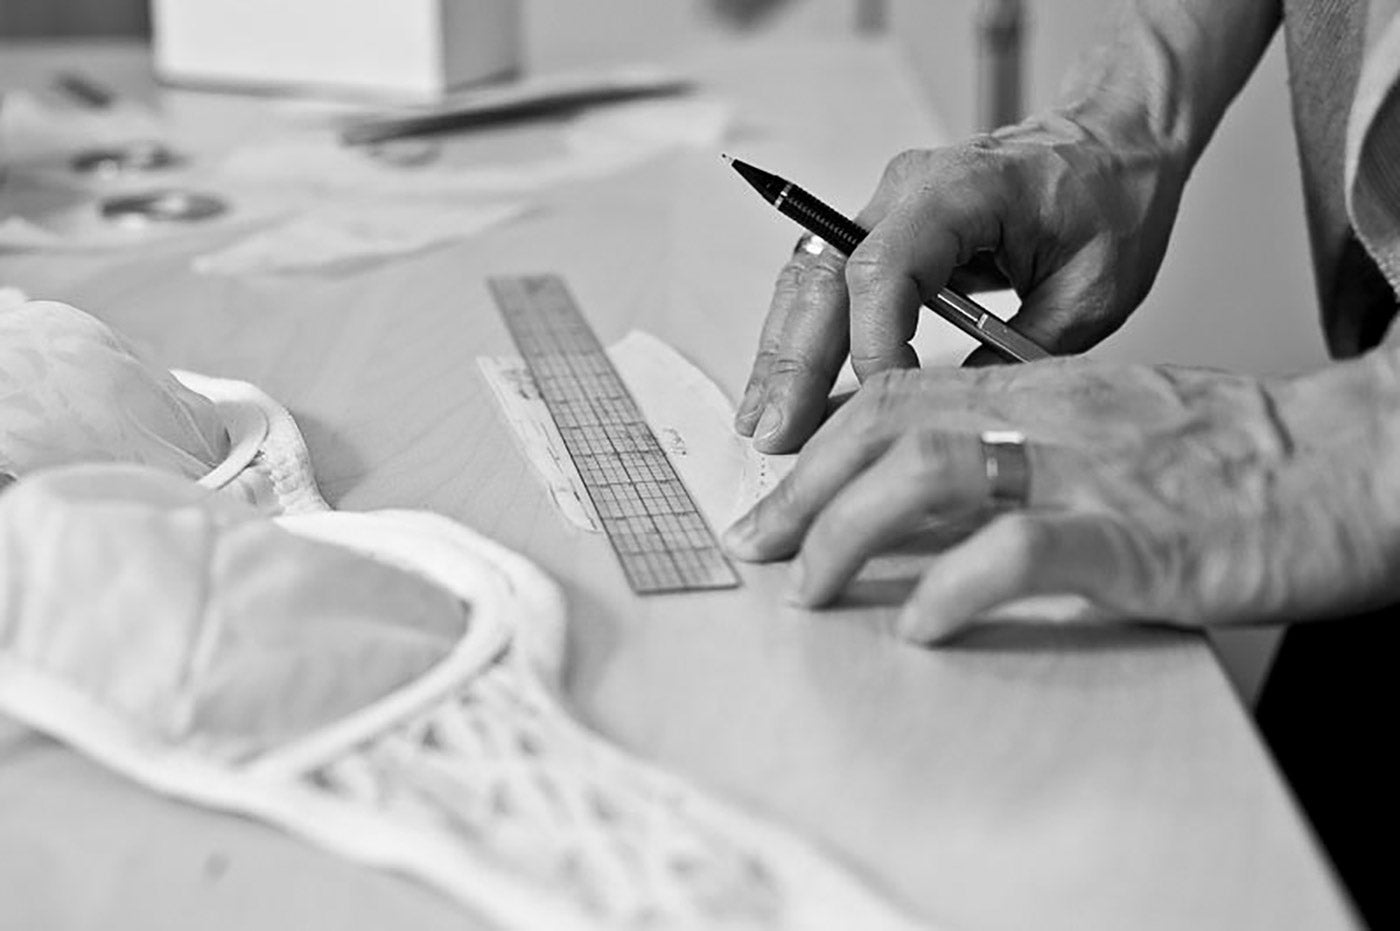 Close up of a woman's hands with a ruler and pencil, making adjustments to a sewing pattern piece for a bra. An unfinished, lacy bra lays on the table nearby.